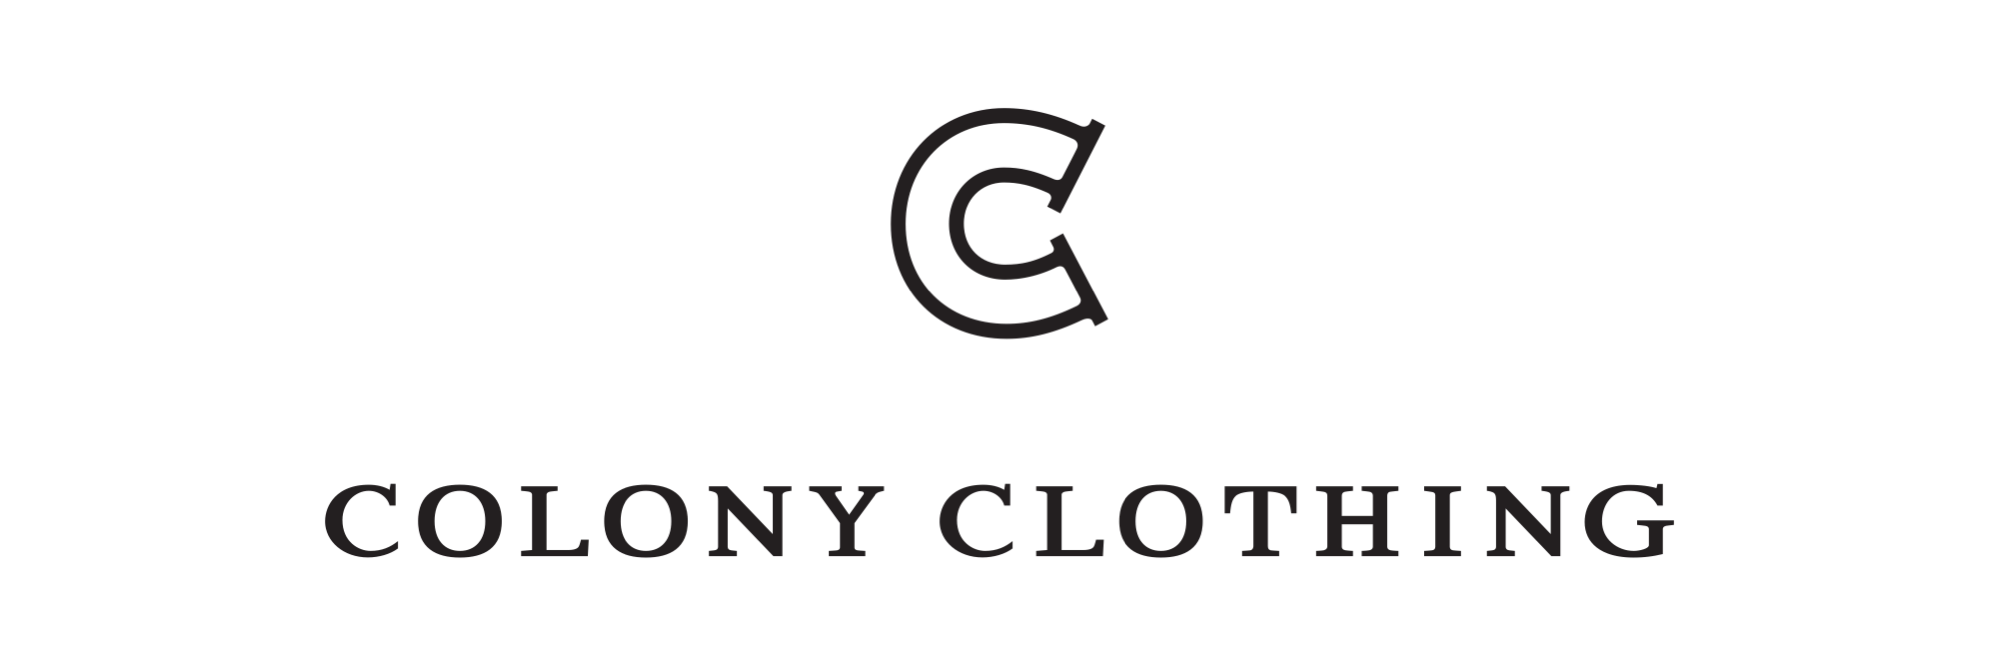 COLONY CLOTHING